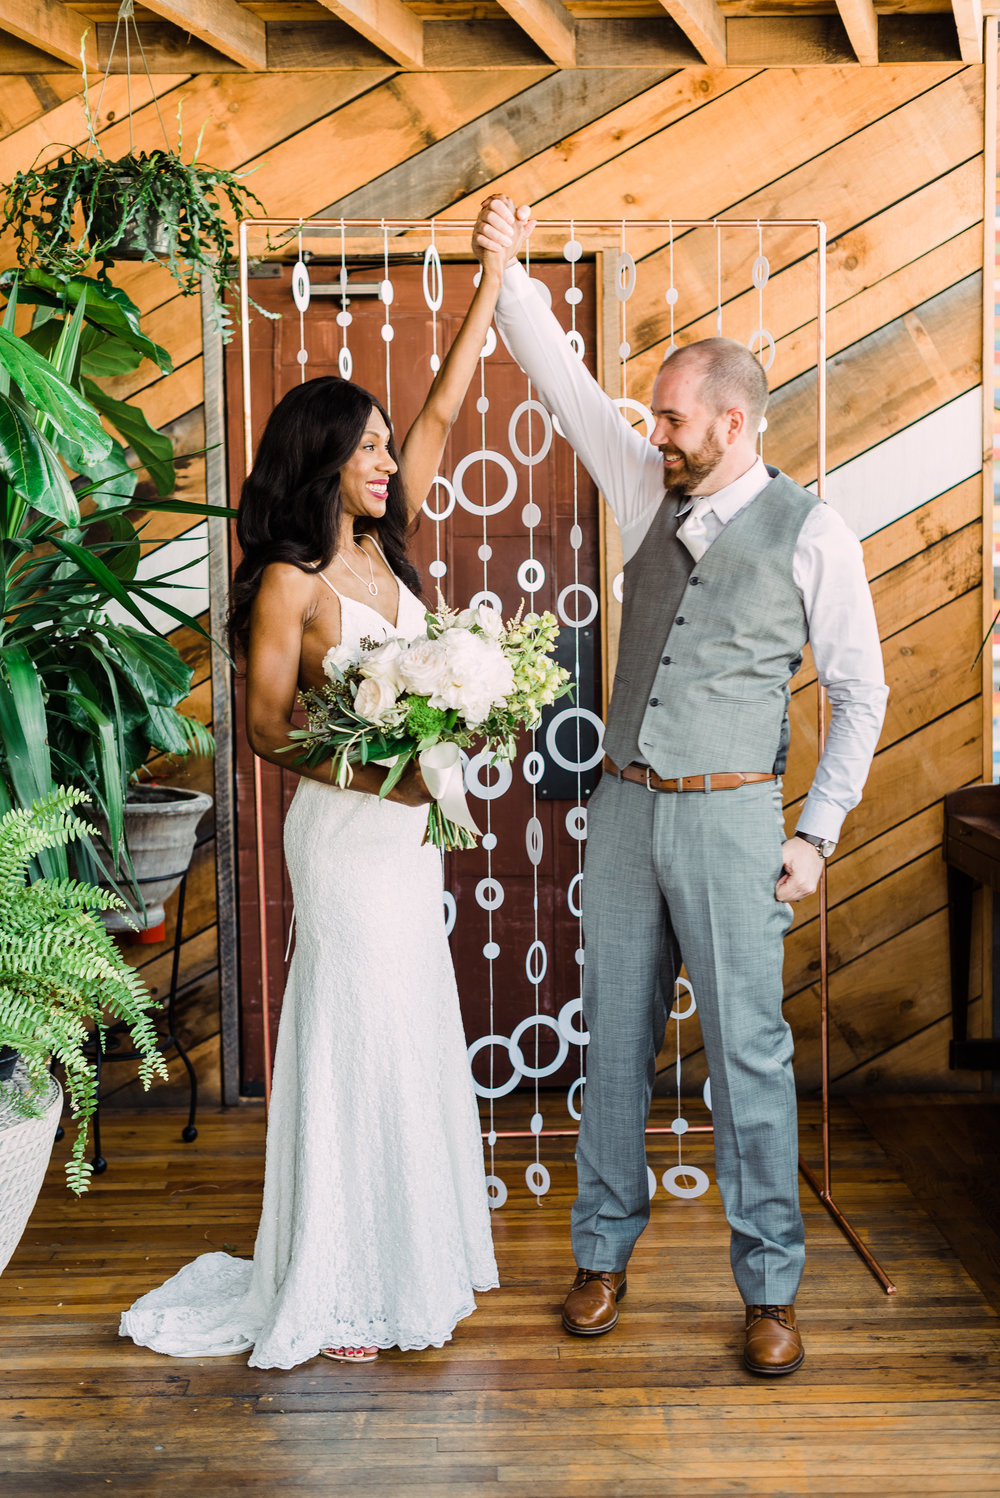 fun candid wedding photo tips capture the moment elopement photo